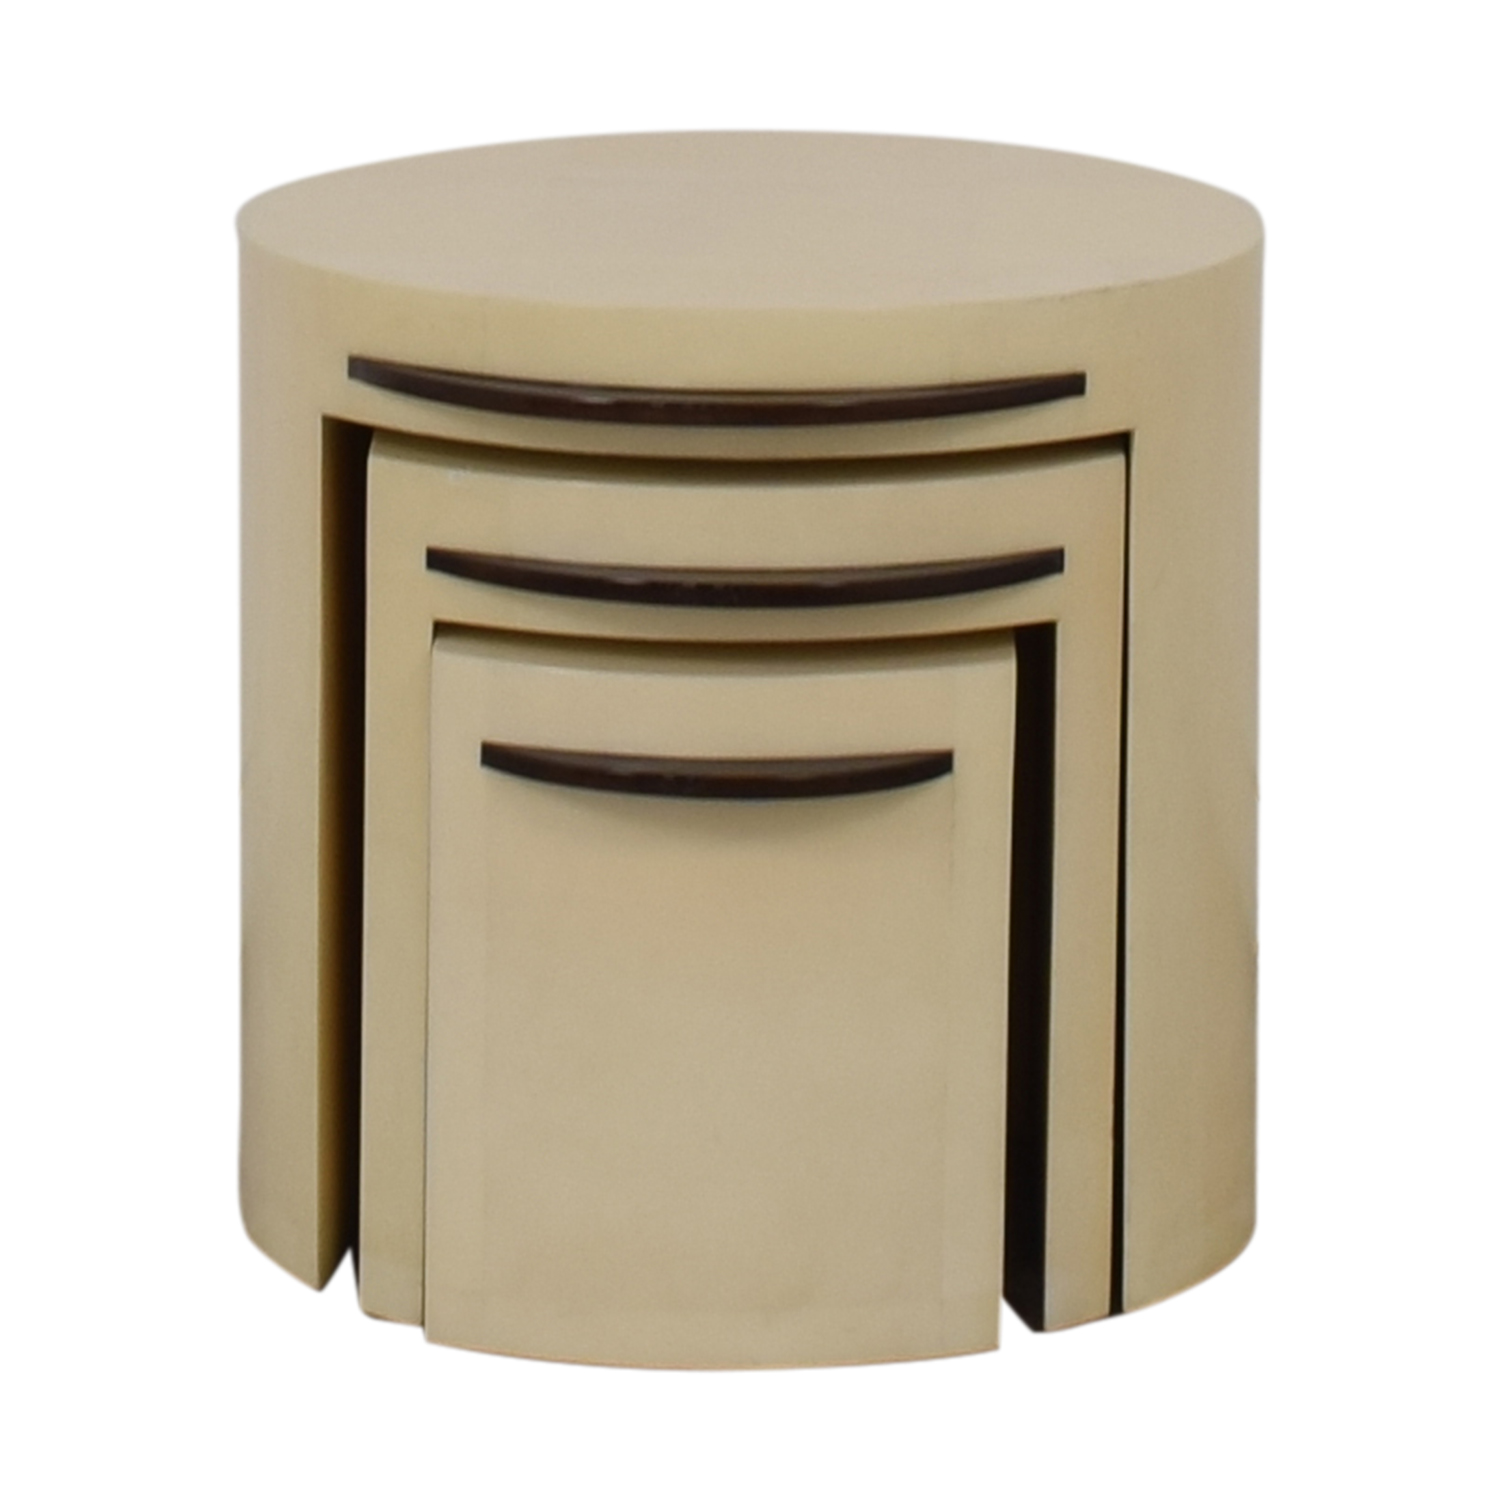 Lorin Marsh Lorin Marsh Lacquered Nesting Tables for sale